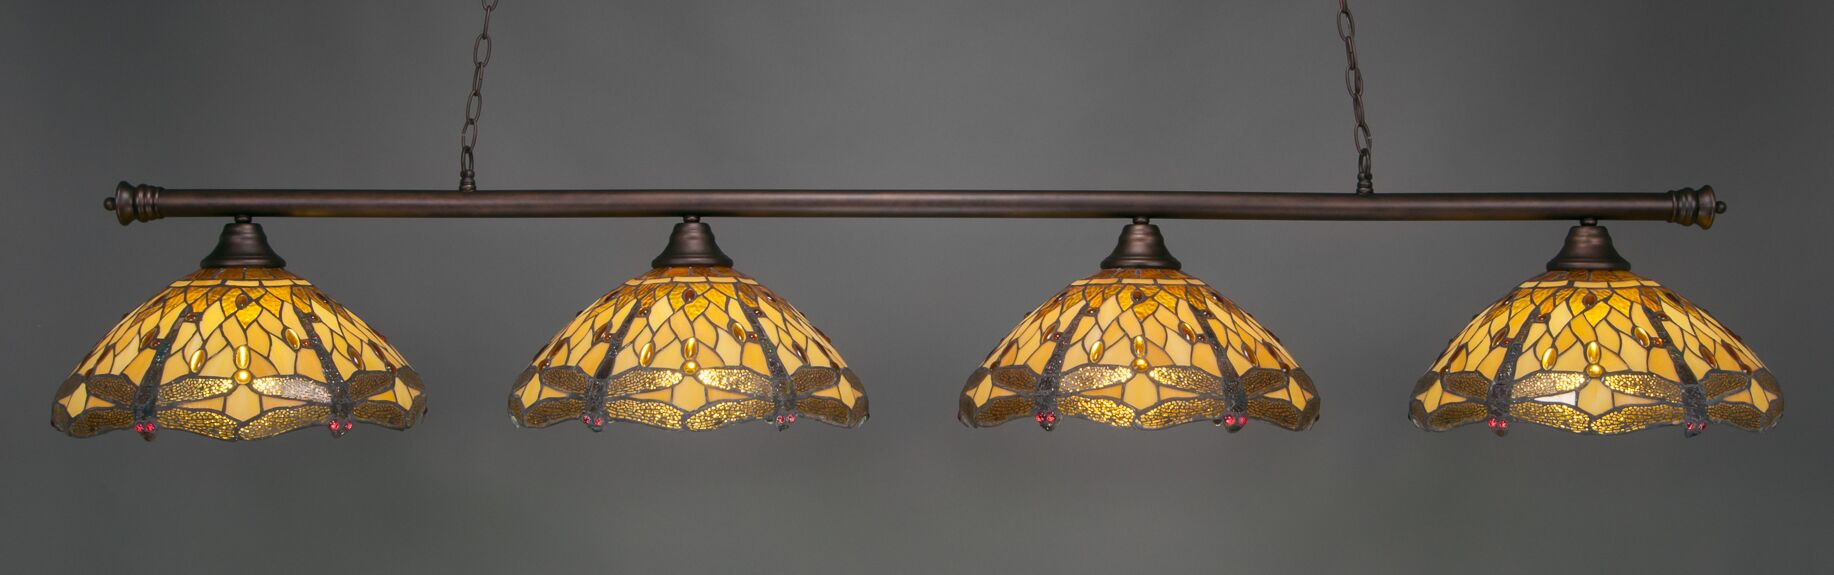 Mendez 4-Light Dragonfly Tiffany Shade Billiard Light Finish: Bronze